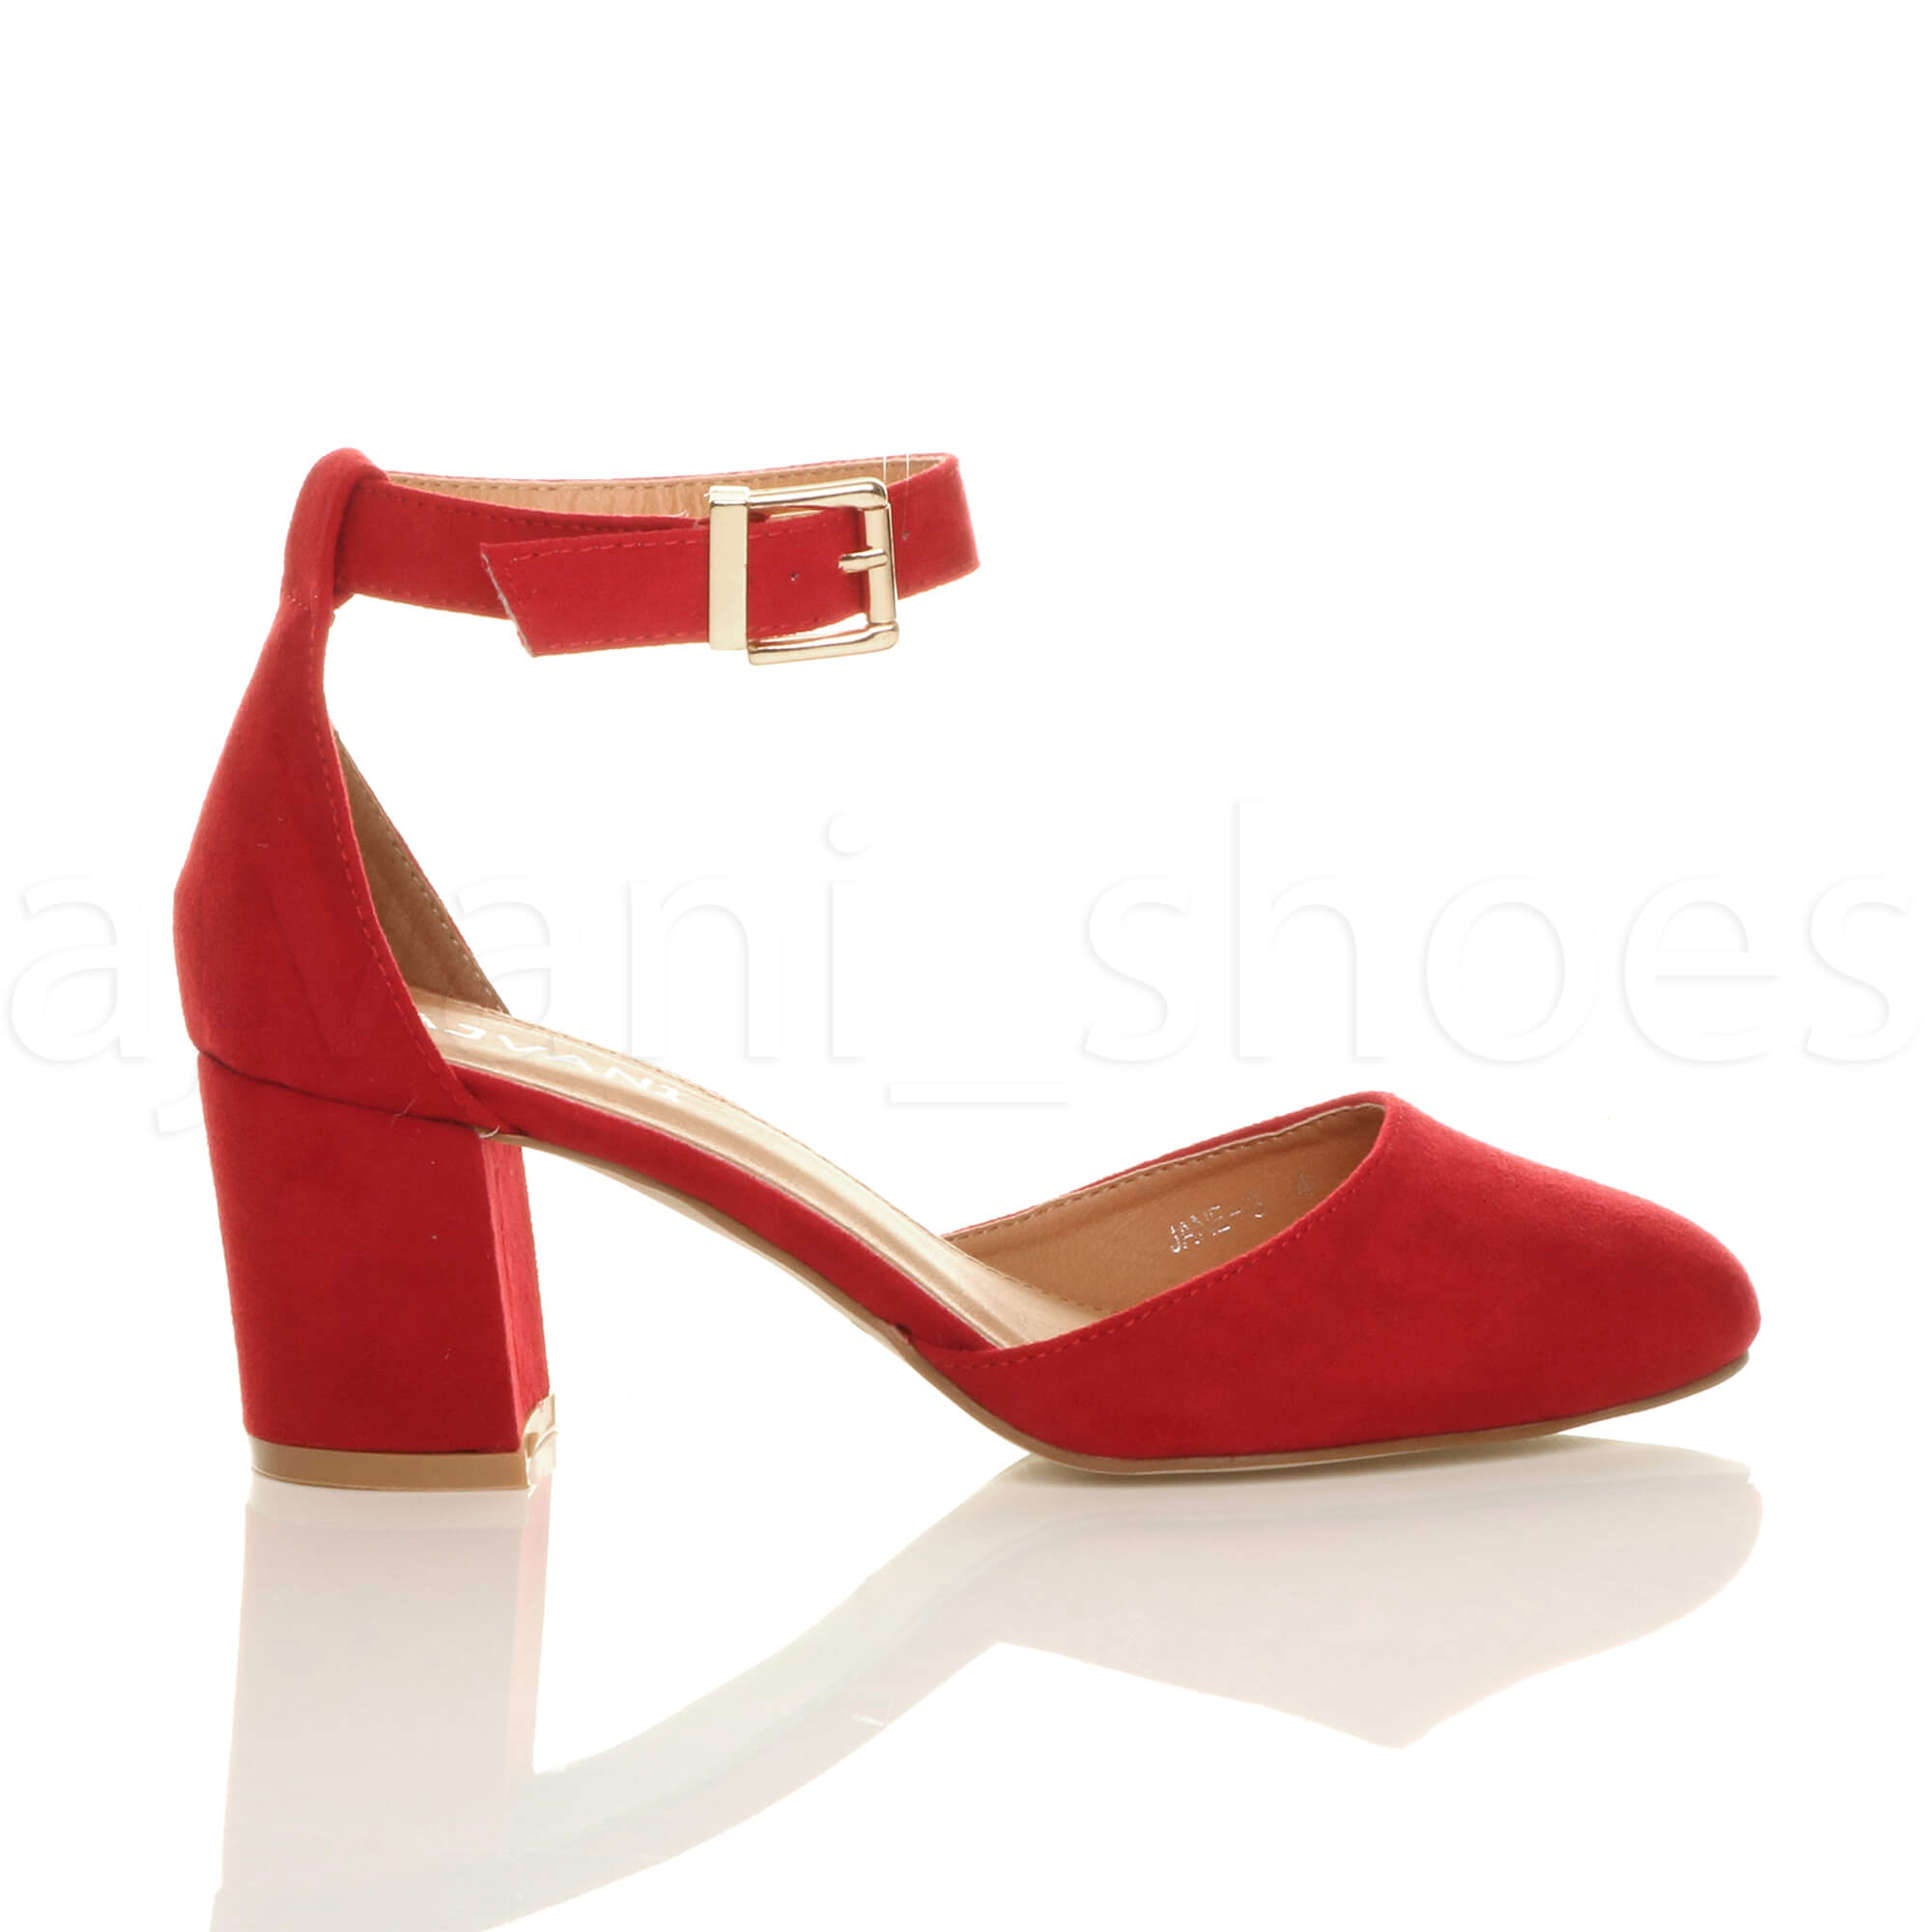 WOMENS-LADIES-LOW-MID-BLOCK-HEEL-ANKLE-STRAP-MARY-JANE-COURT-SHOES-SANDALS-SIZE thumbnail 139